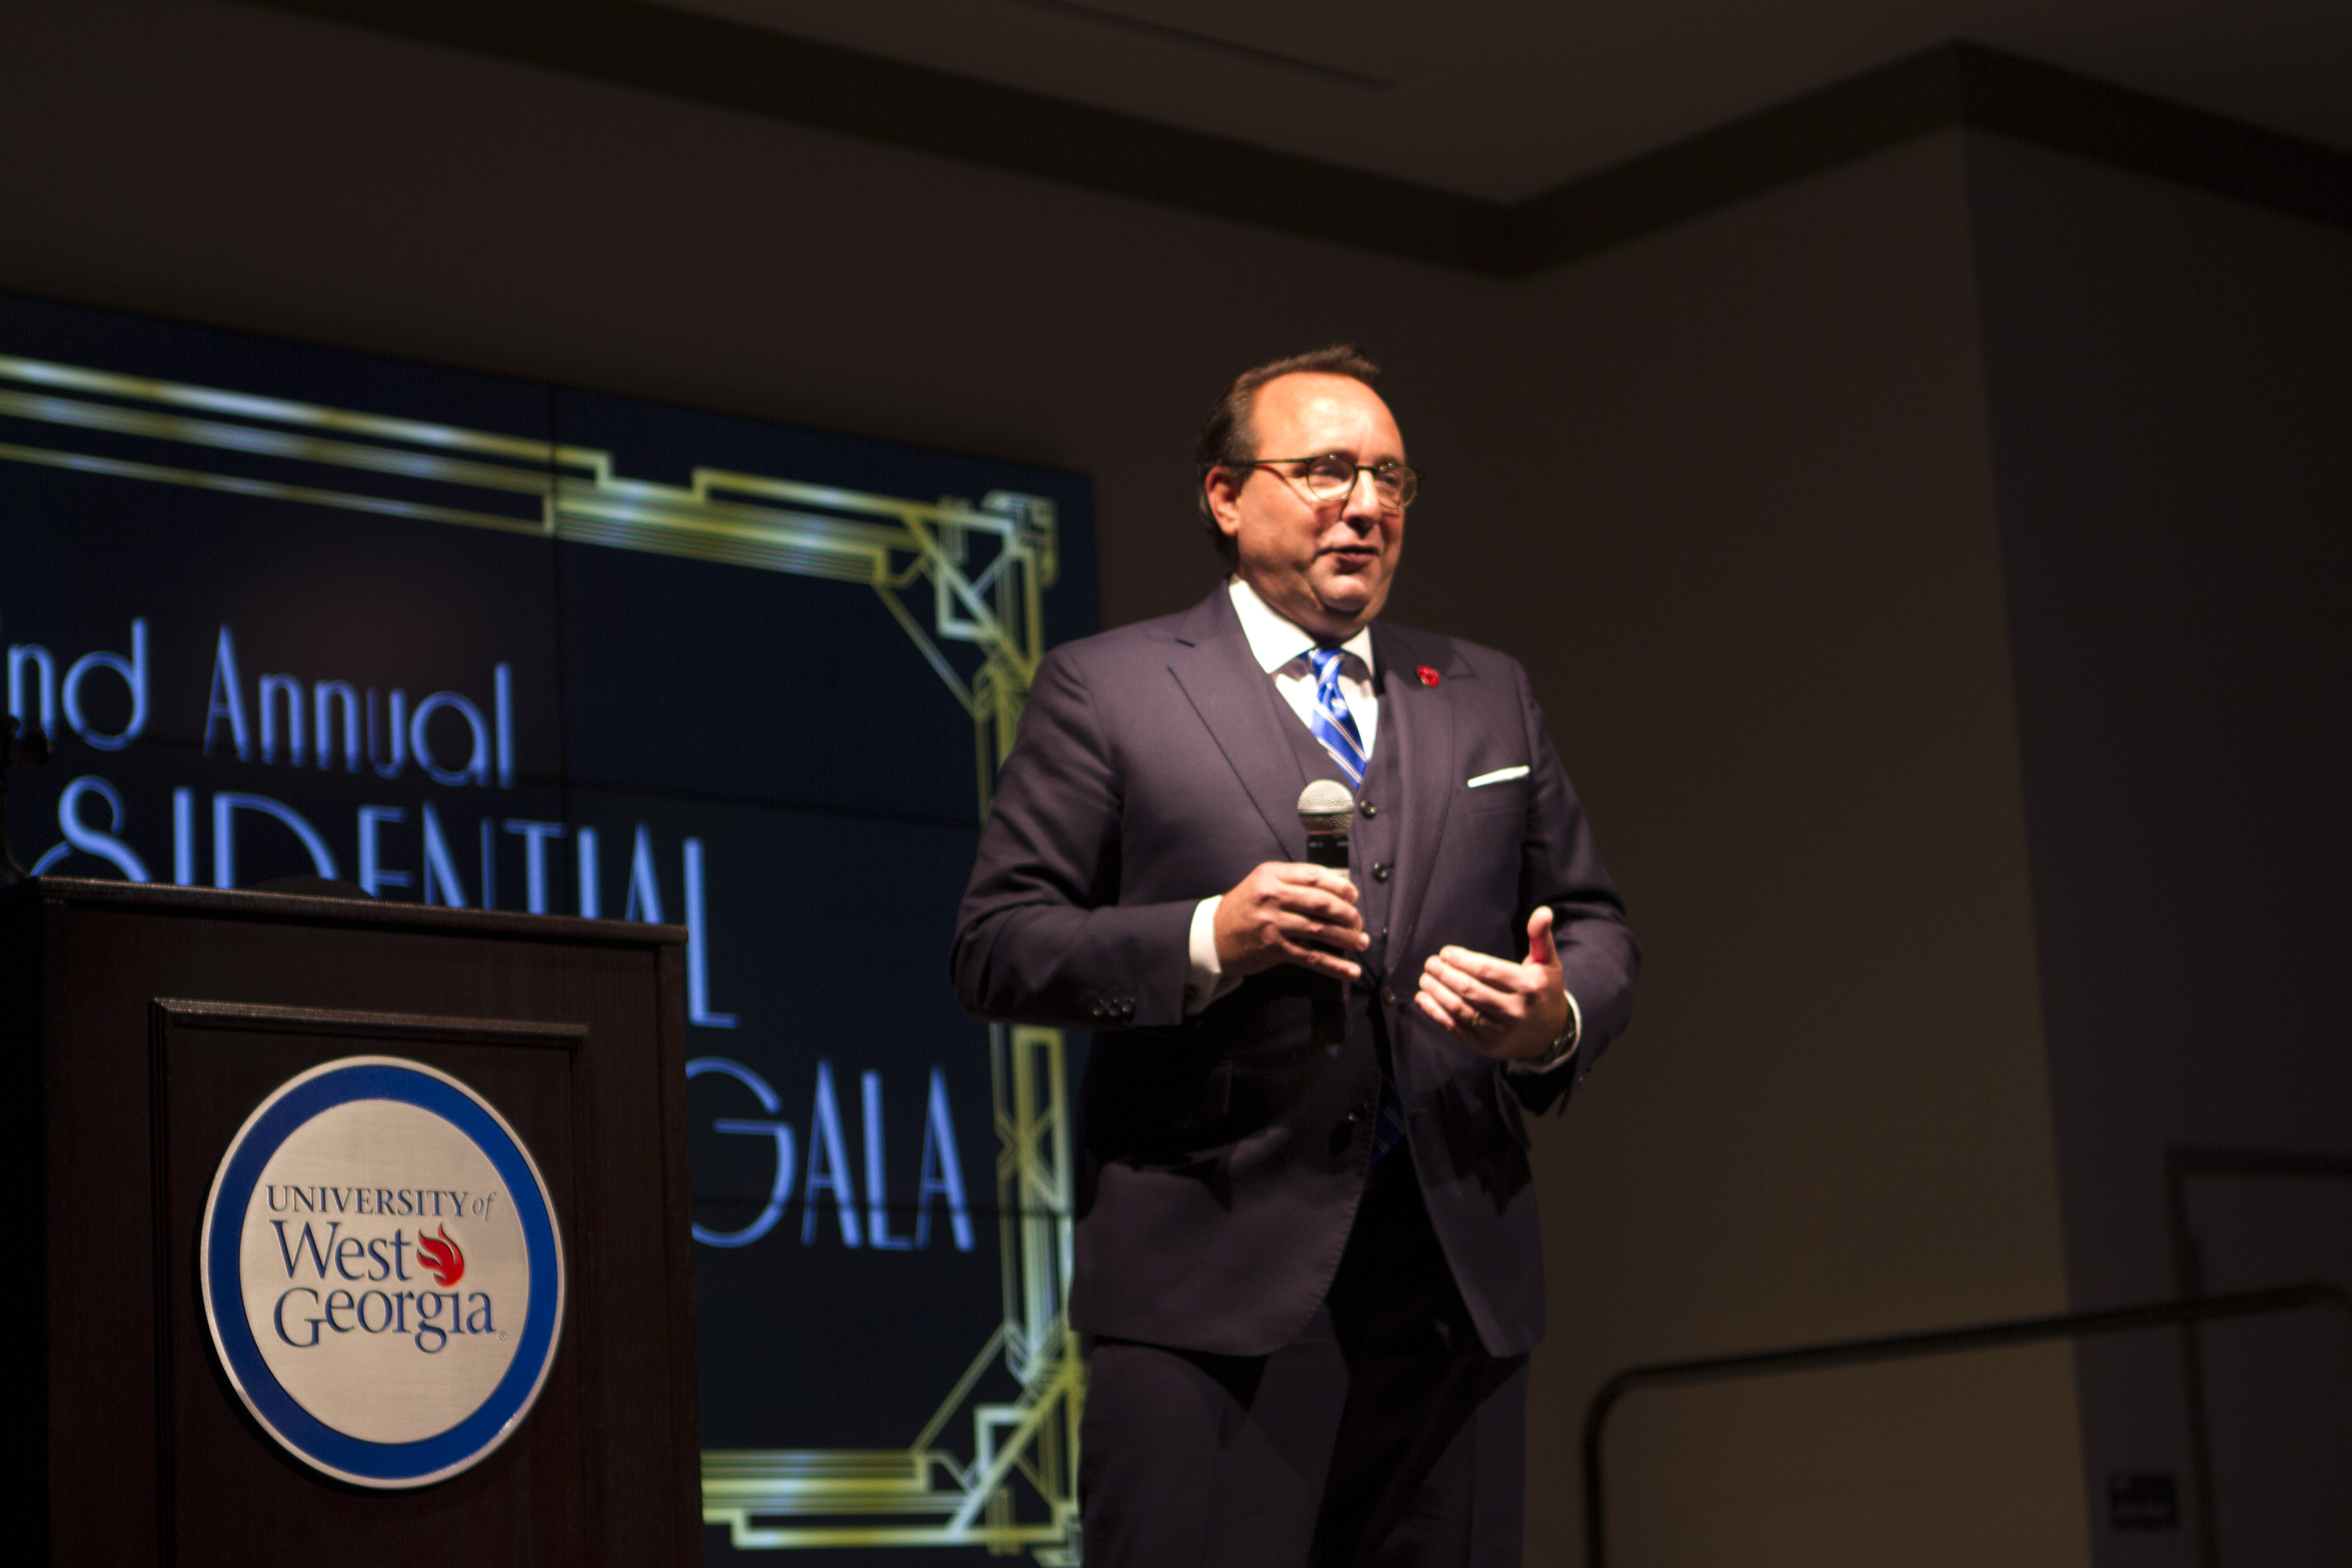 Fogo CEO Provides Keynote Speech at UWG Presidential Scholarship Gala